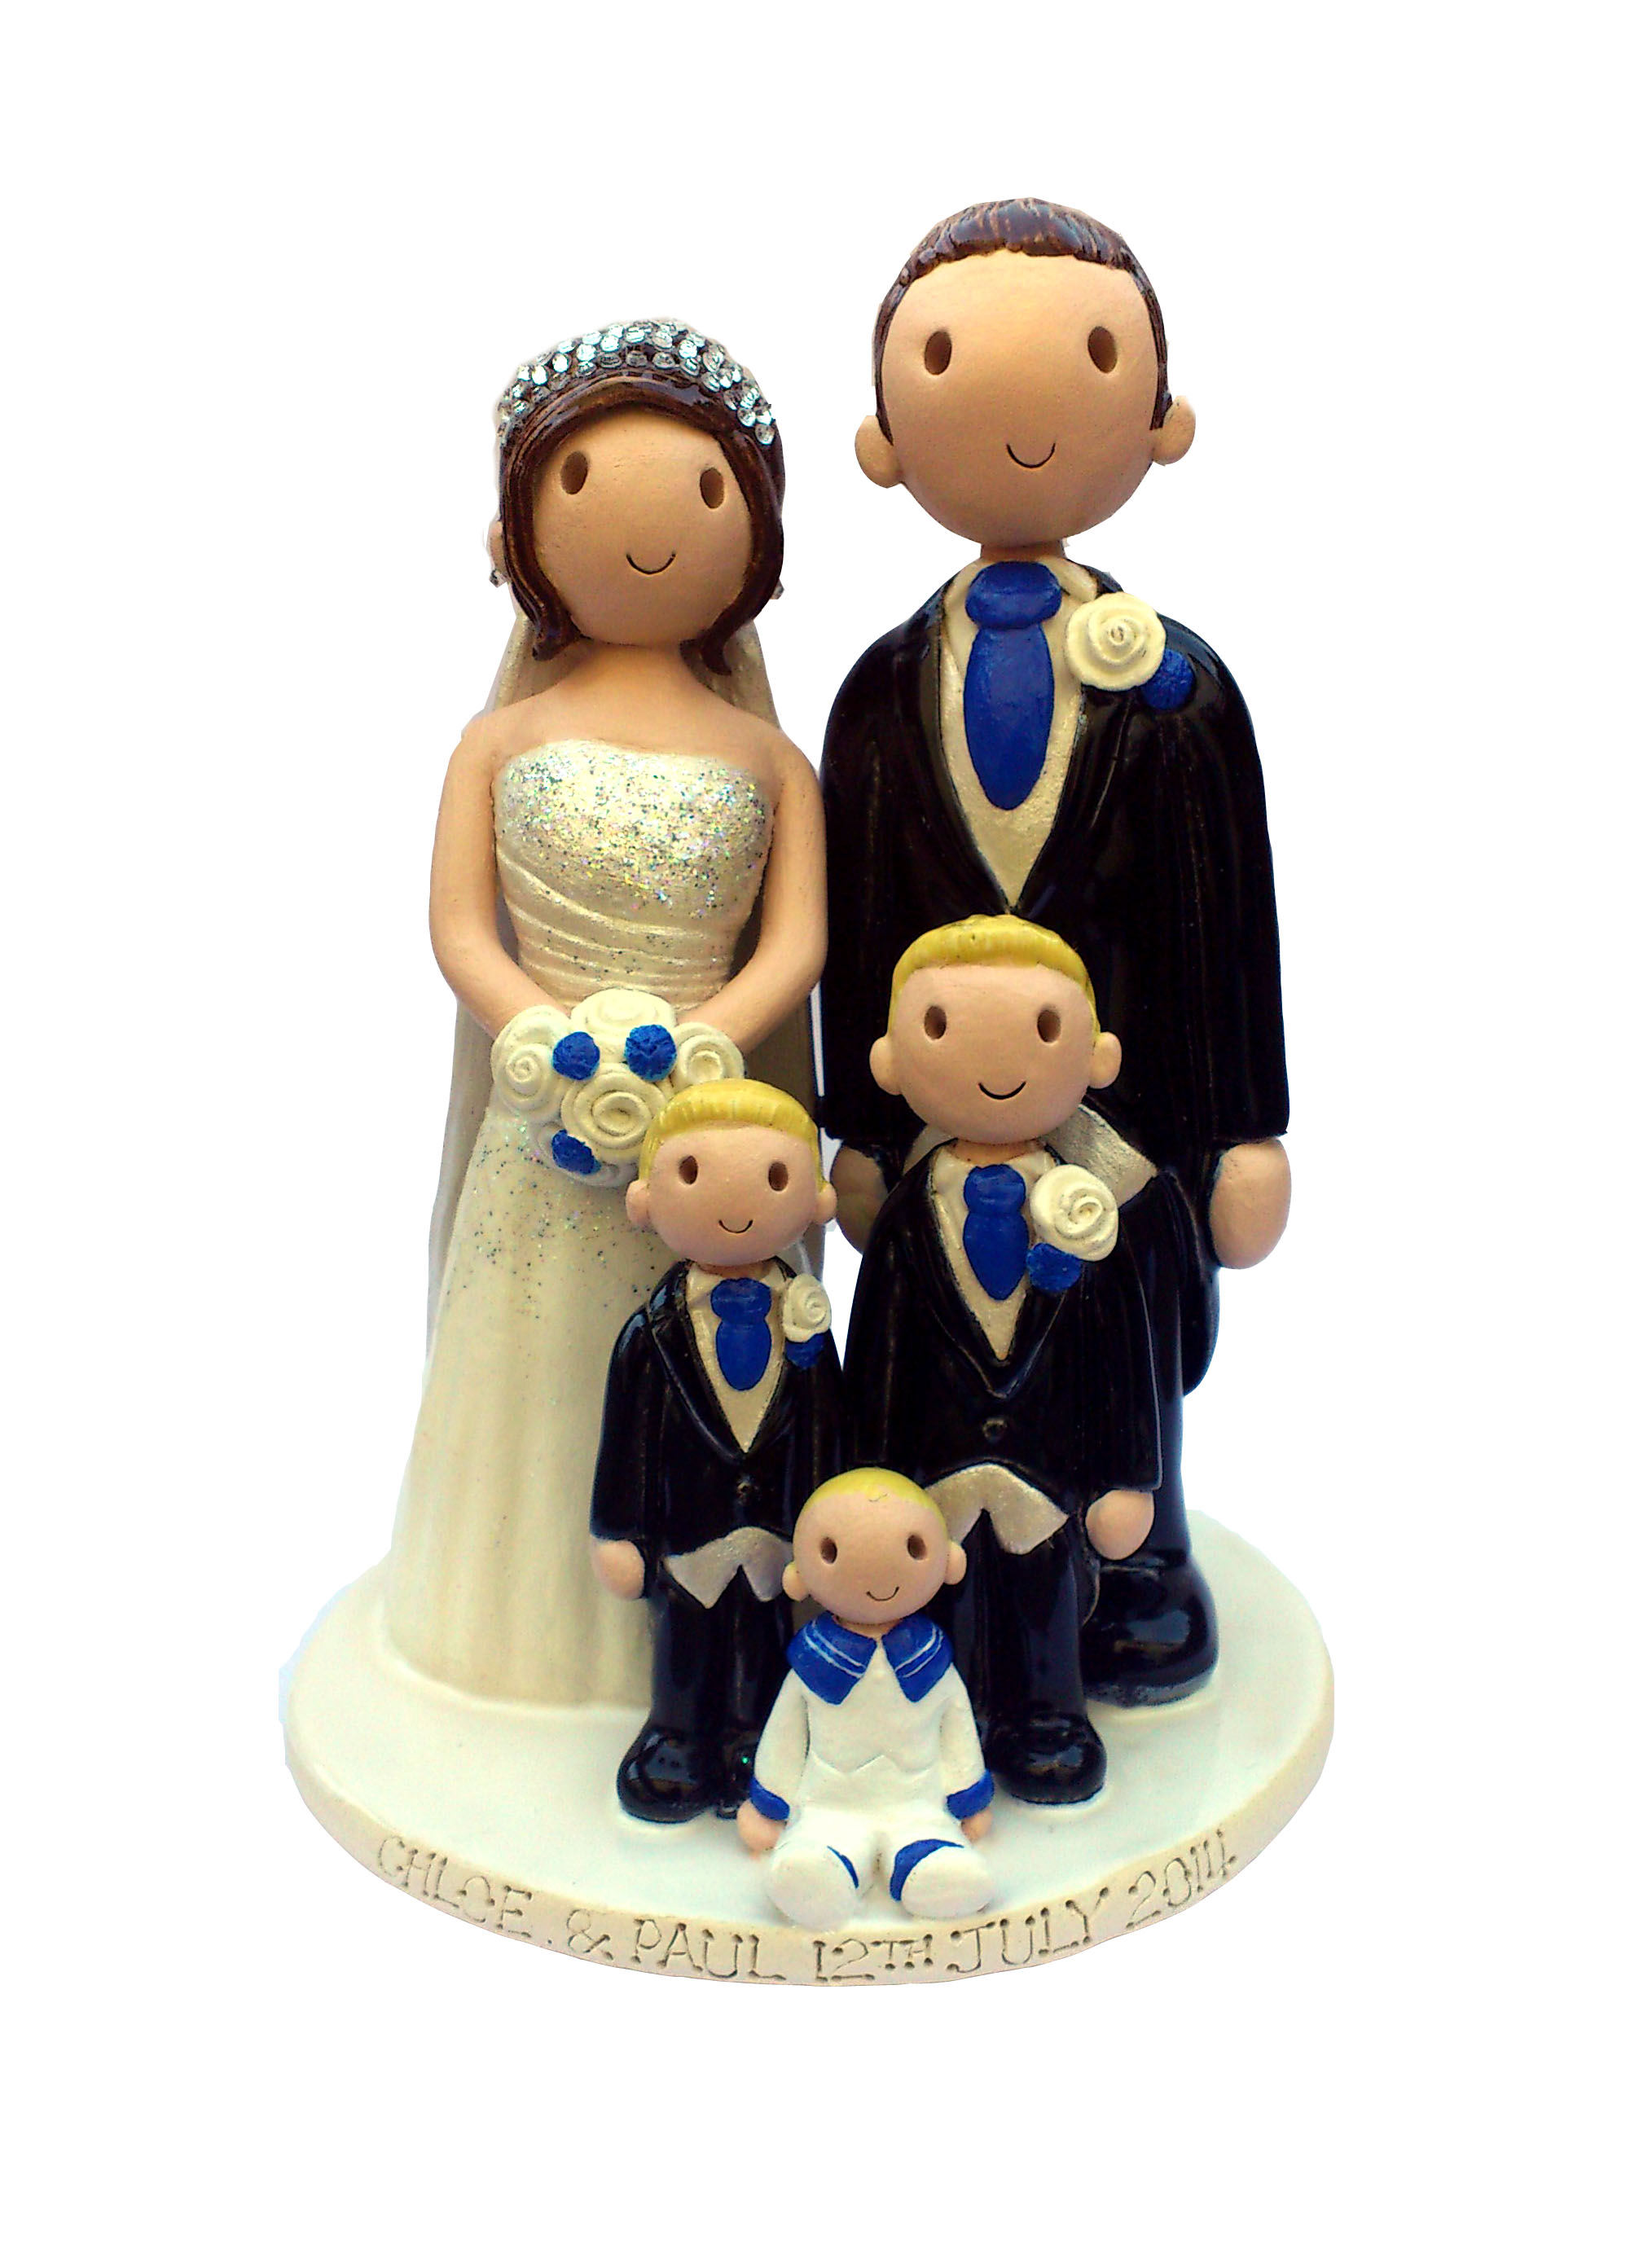 personalised wedding cake figurines wedding cake toppers gallery examples of toppers we 18233